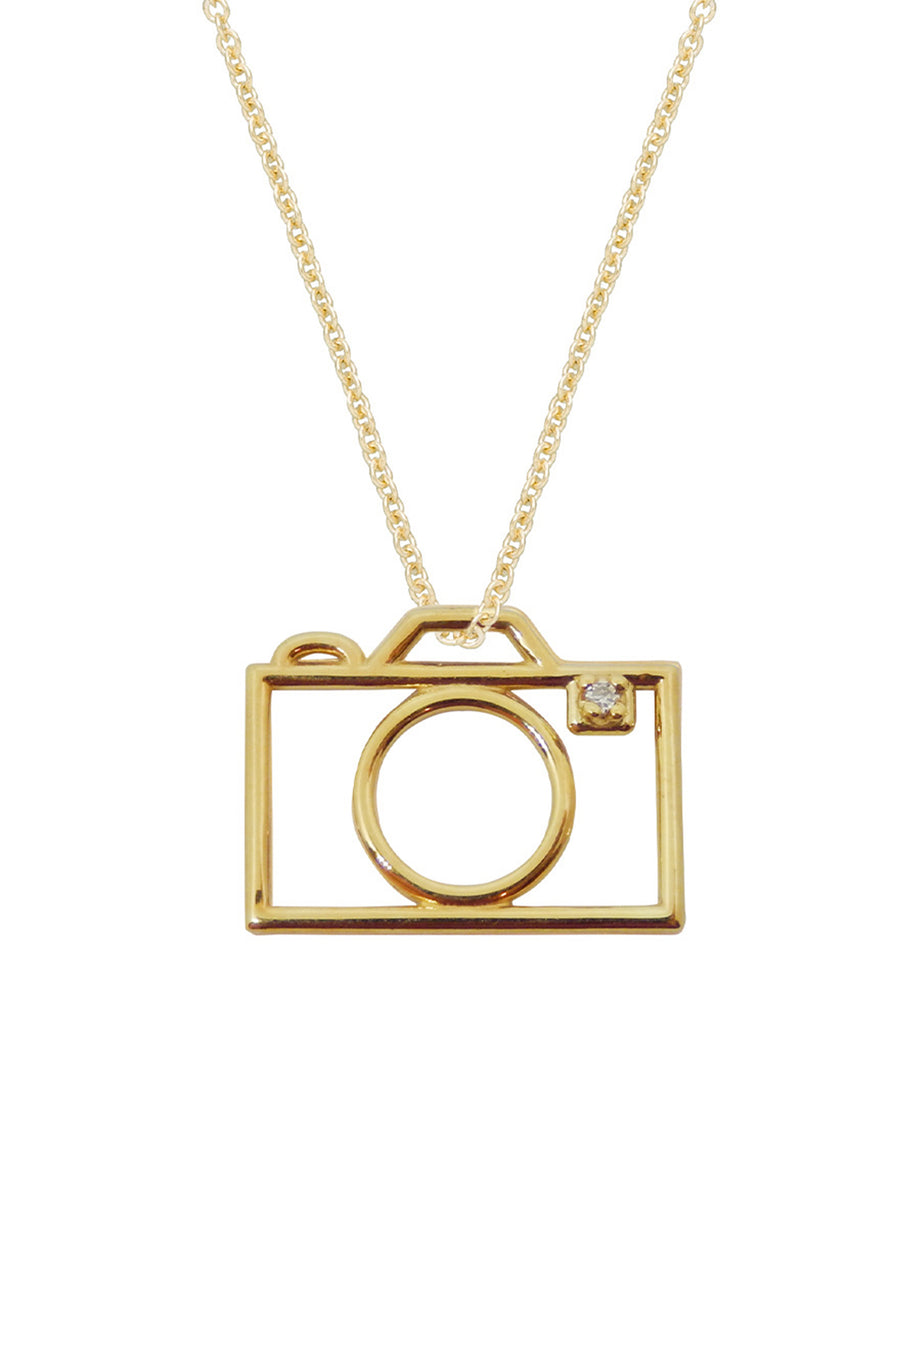 9K Yellow Gold & Diamond Camera Necklace